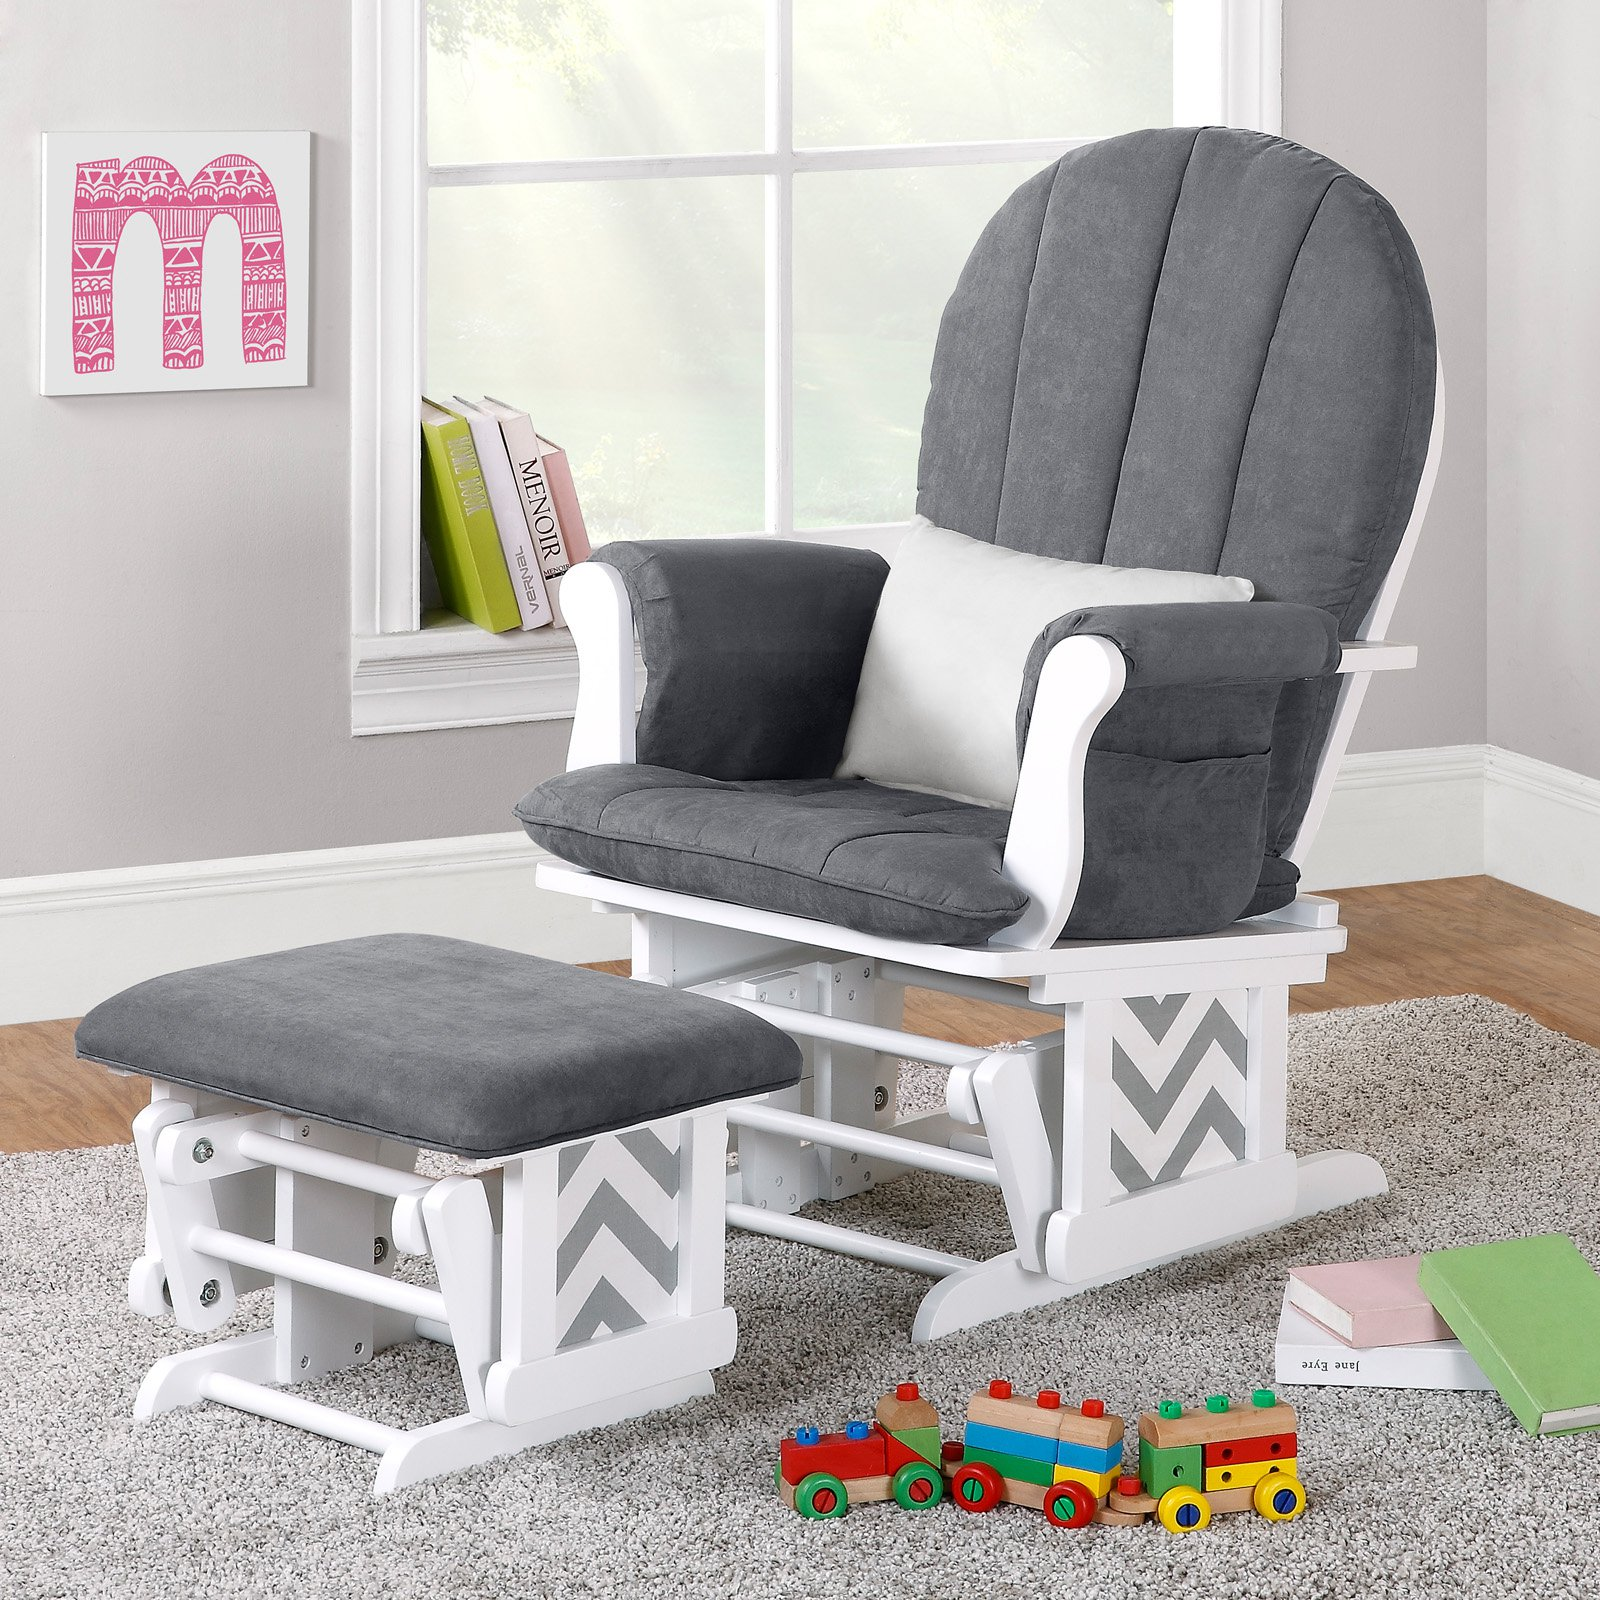 Nursery-room-rocking-chair